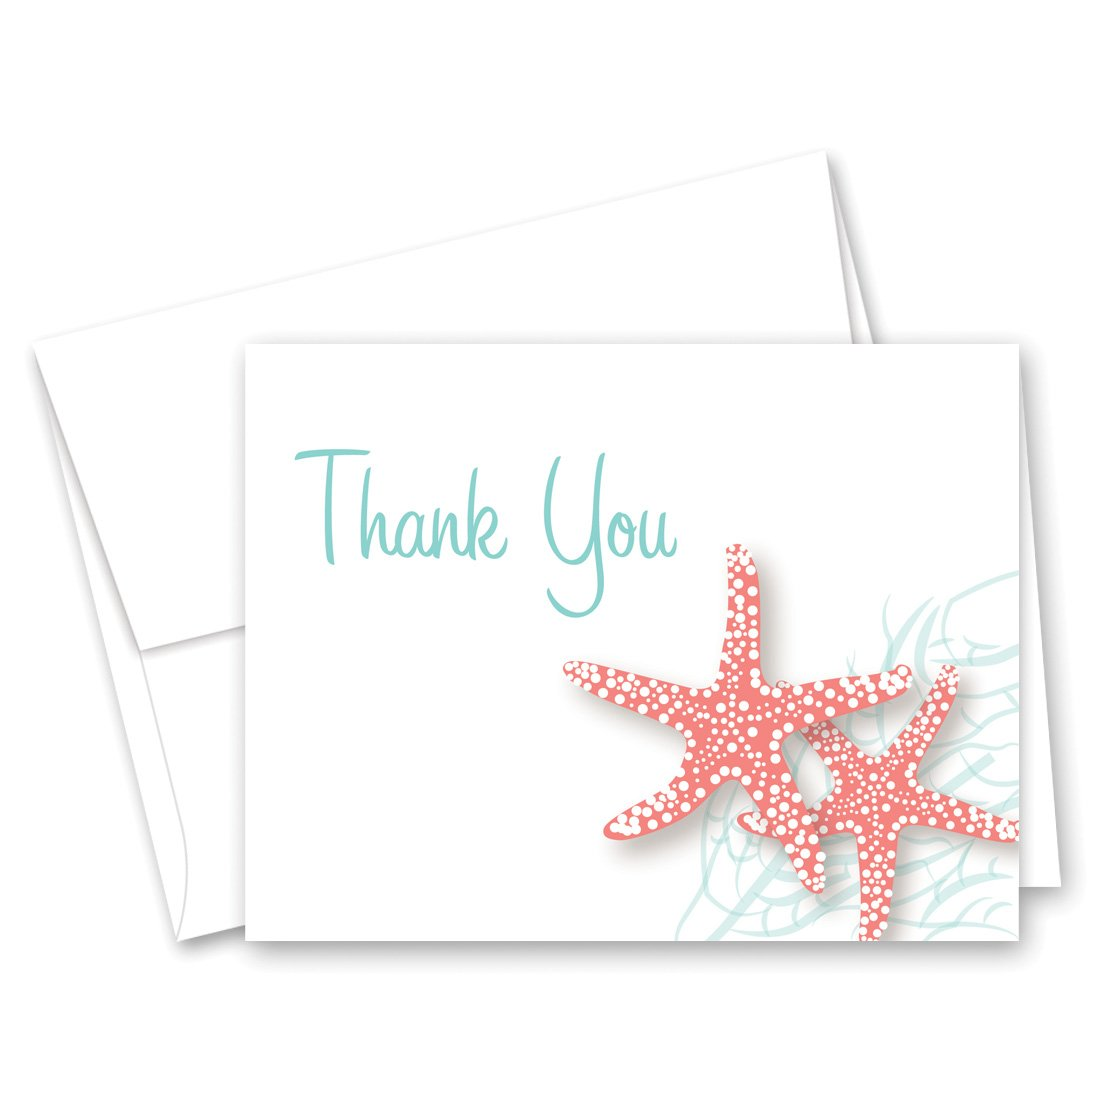 50 Starfish Beach Wedding Shower Thank You Cards (Coral) by MyExpression.com